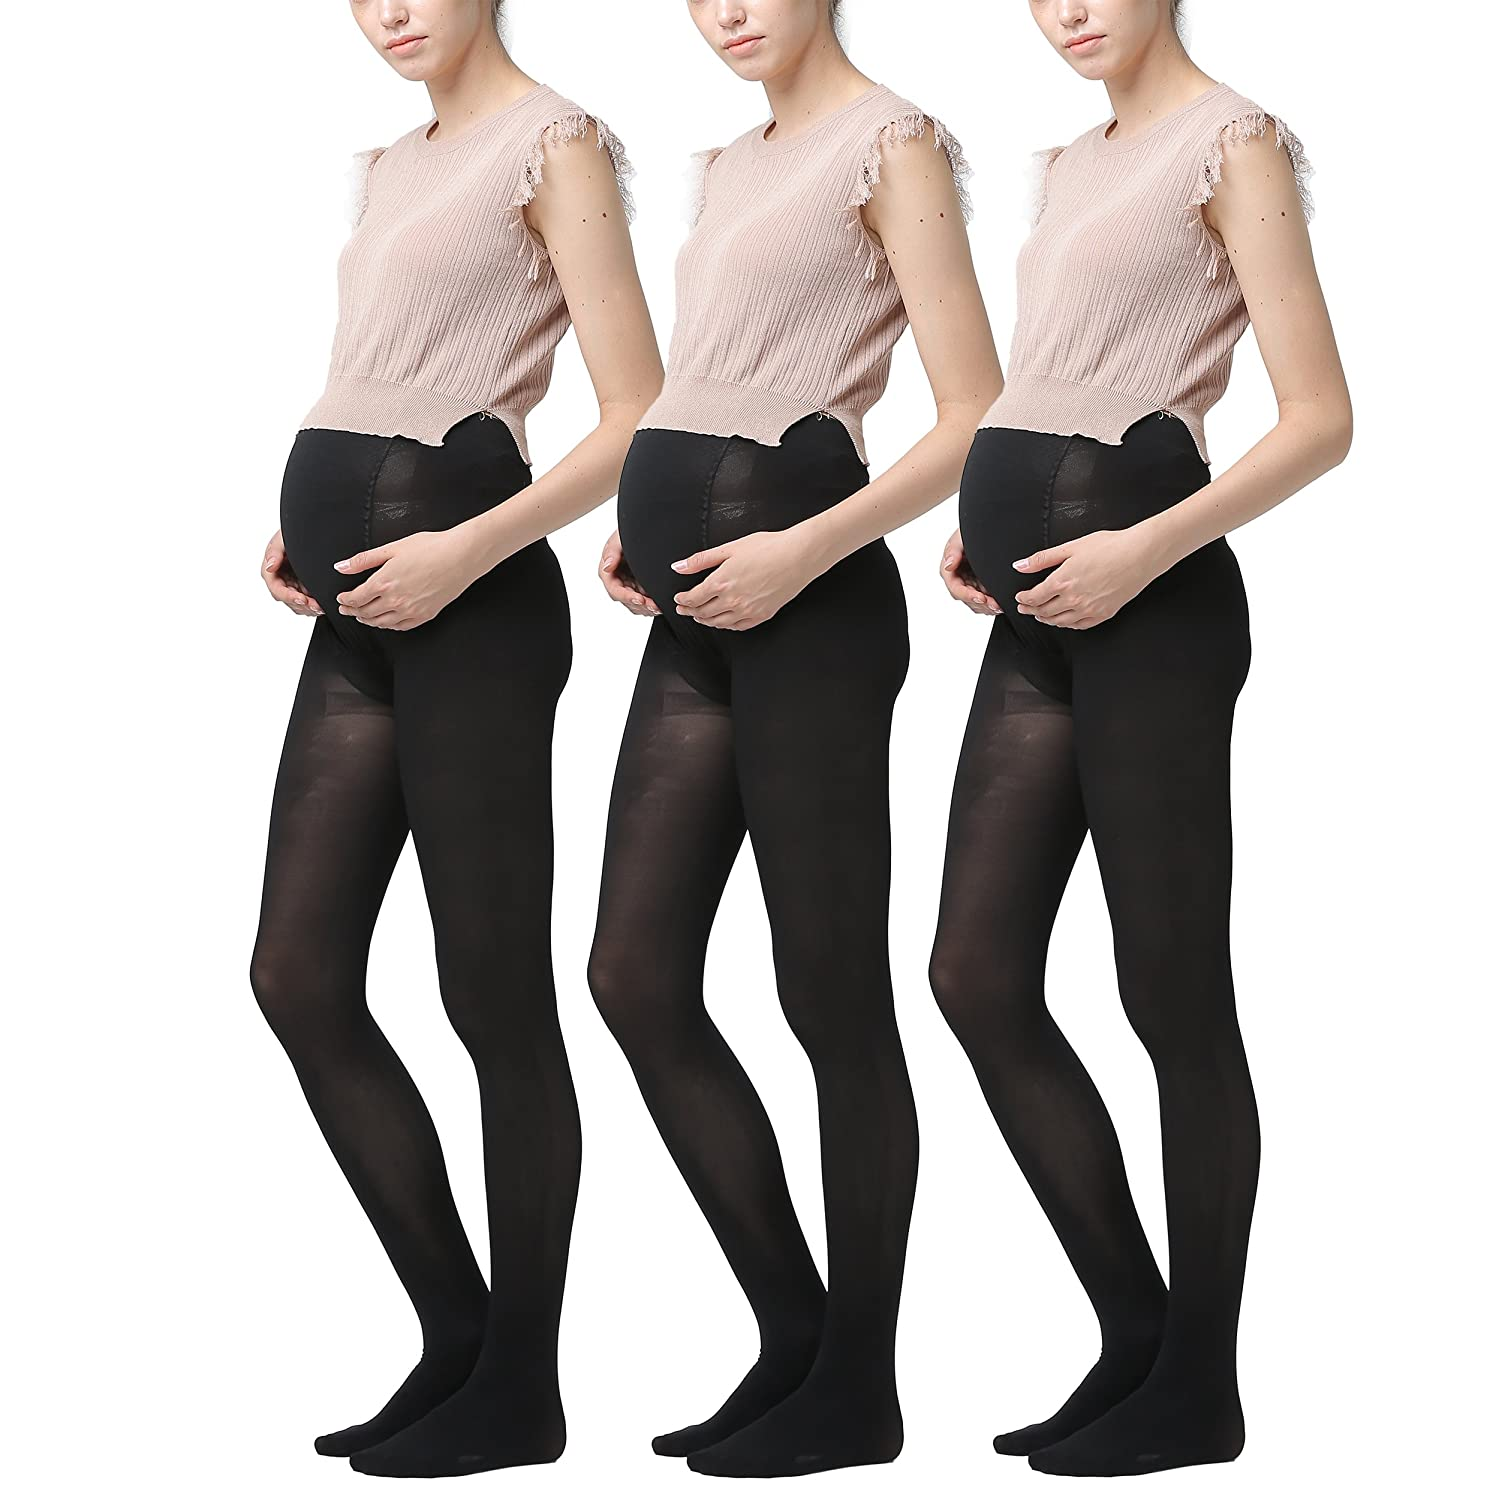 Women's Pregnant Maternity Pantyhose 3Pack Anti-pilling Opaque Tights 200 Denier BNS7027Nx1